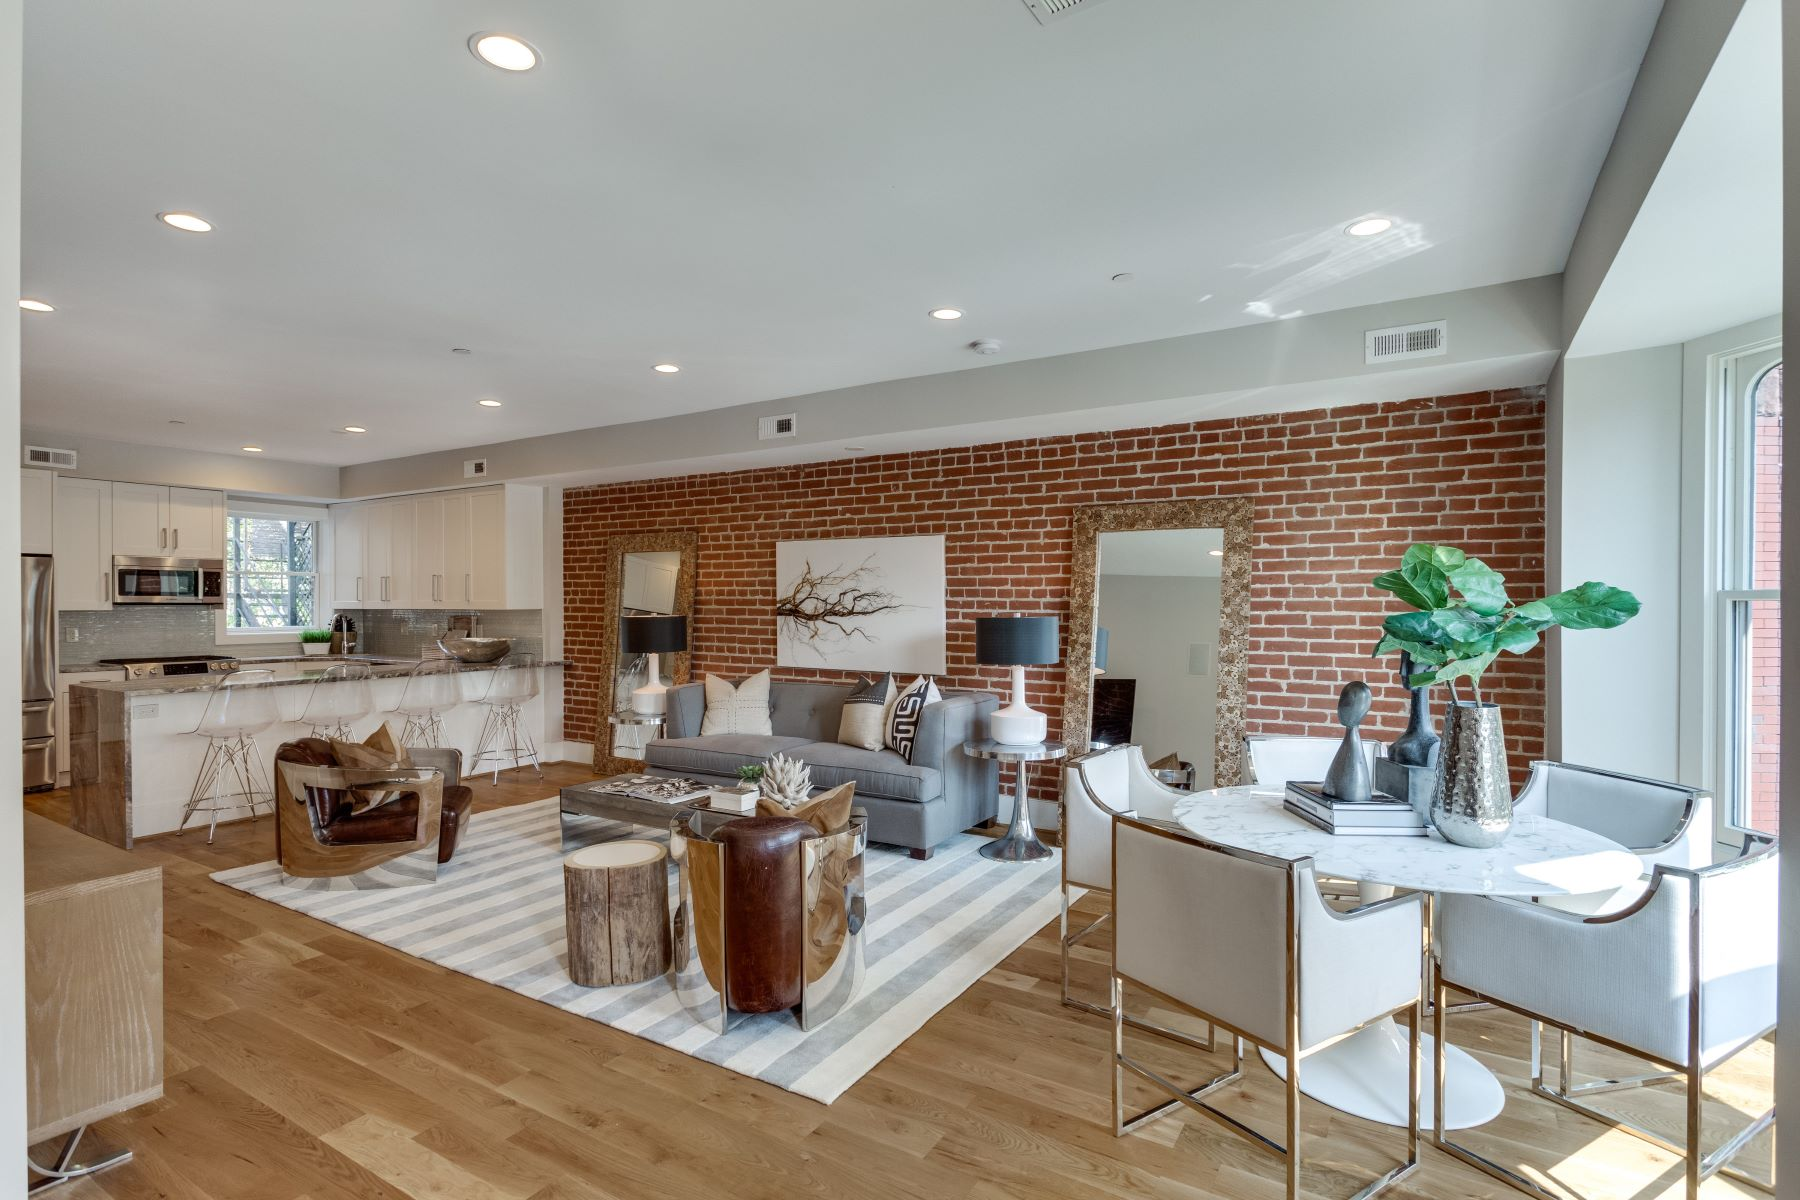 Single Family Home for Sale at The Appleton 2024 16th Street NW #2 Washington, District Of Columbia 20009 United States